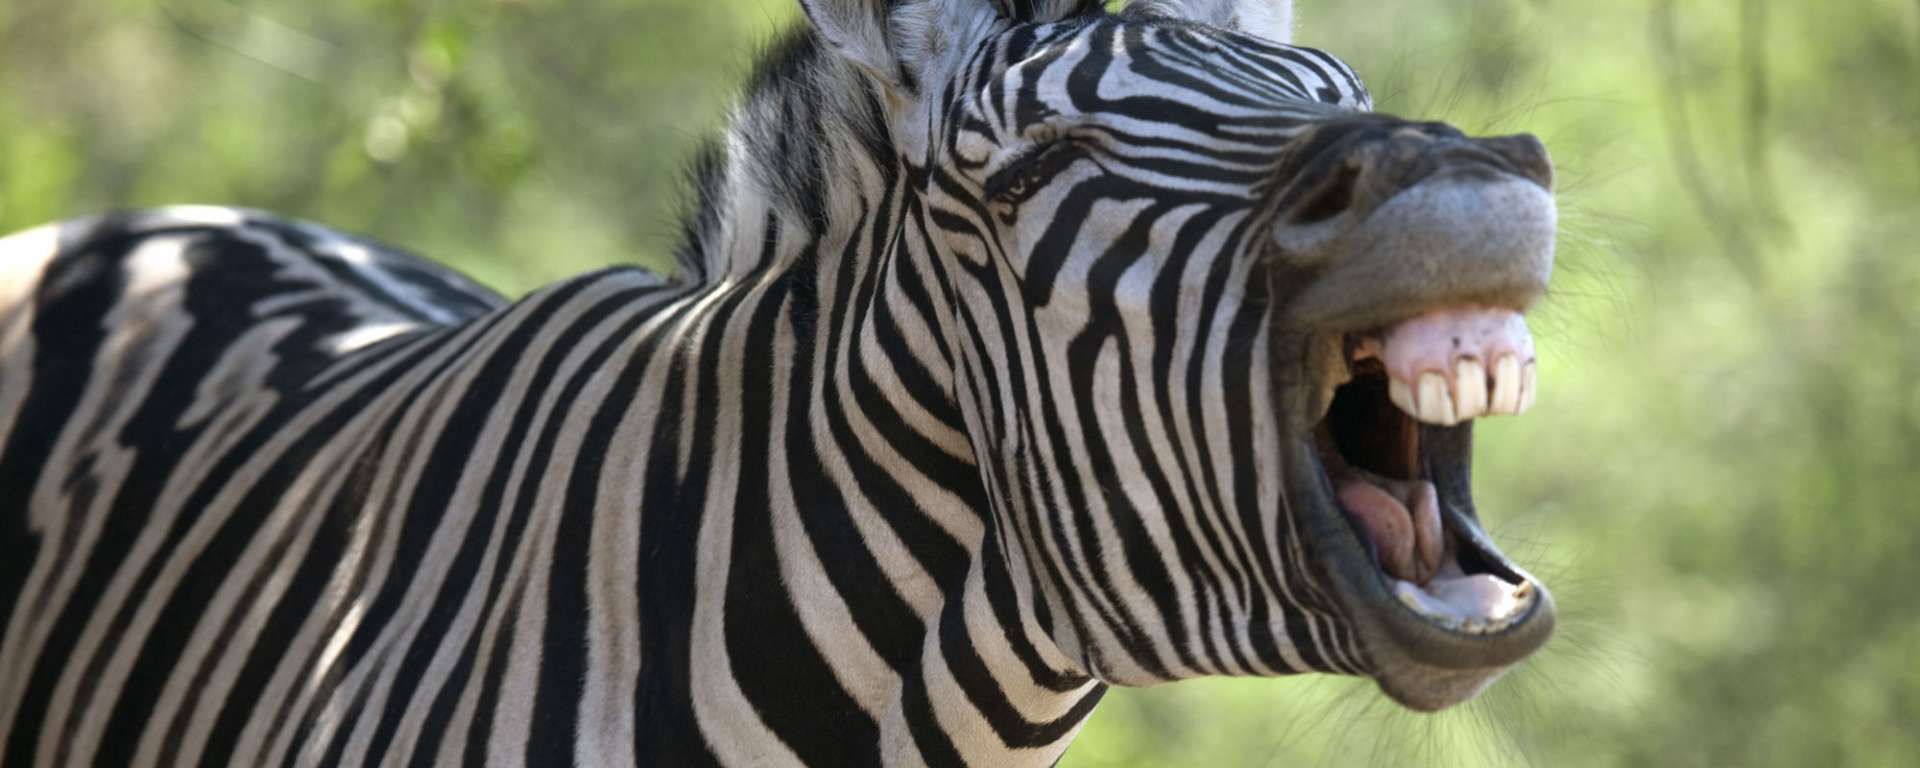 Zebra April Fool's